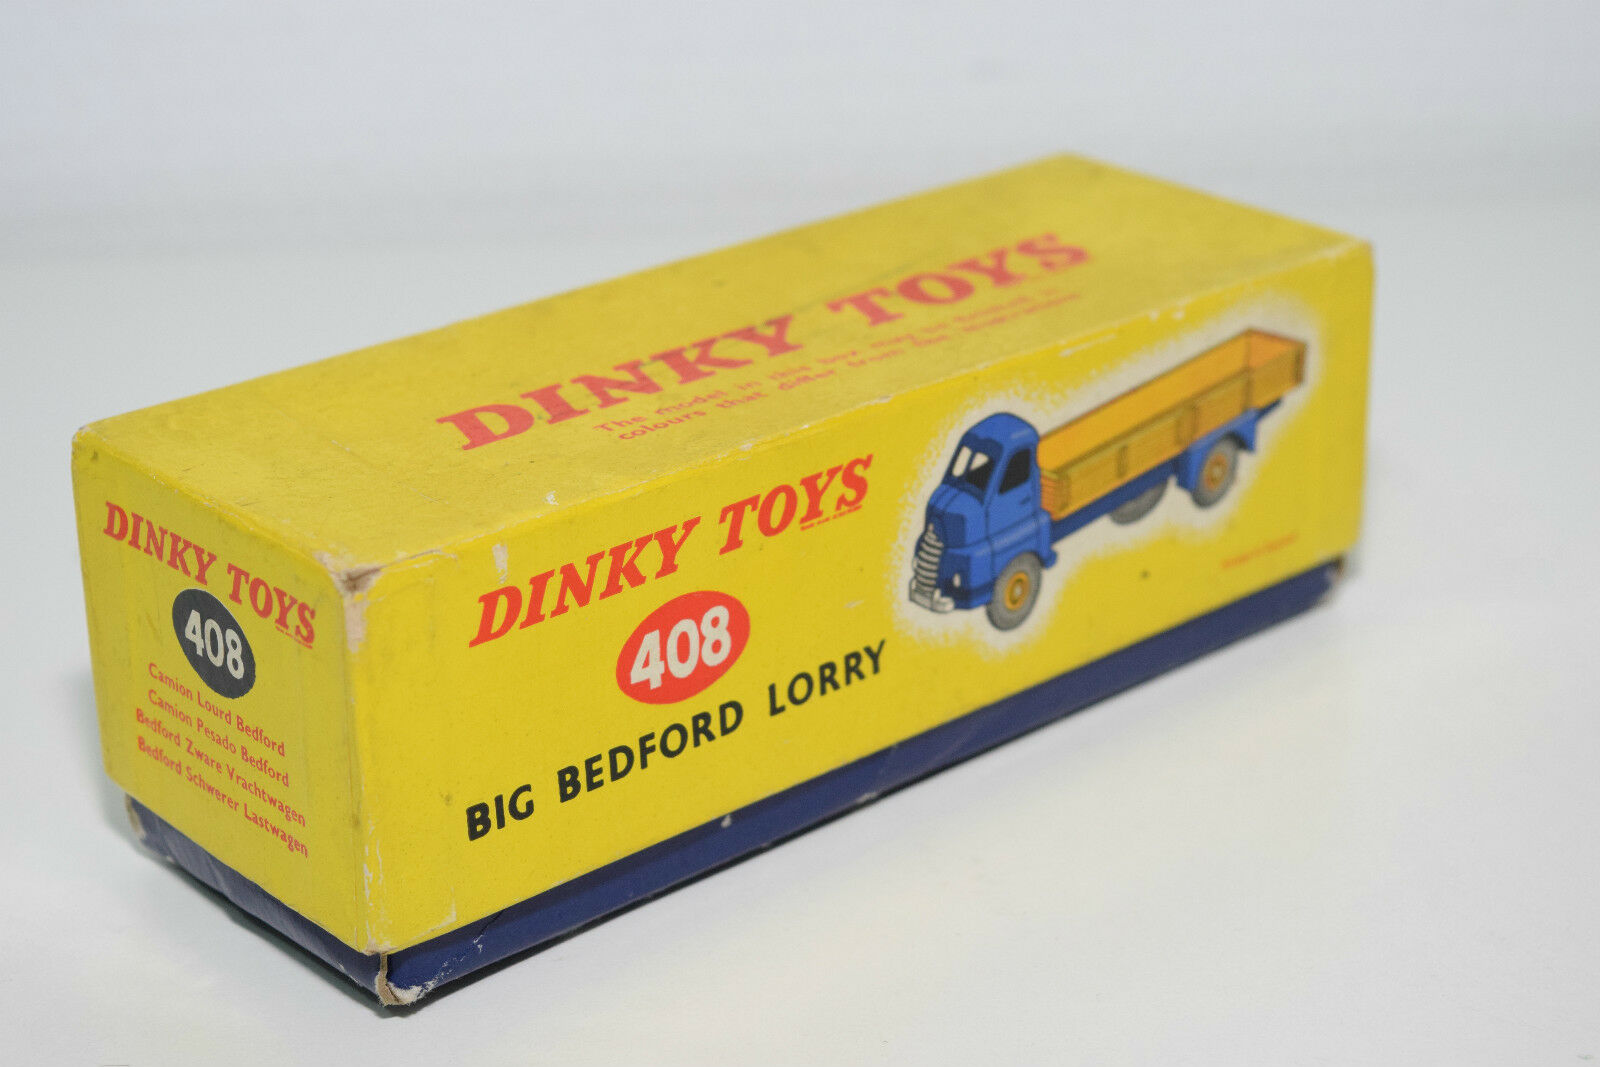 DINKY TOYS 408 408 408 BIG BEDFORD LORRY ORIGINAL EMPTY BOX EXCELLENT CONDITION a8e0a8